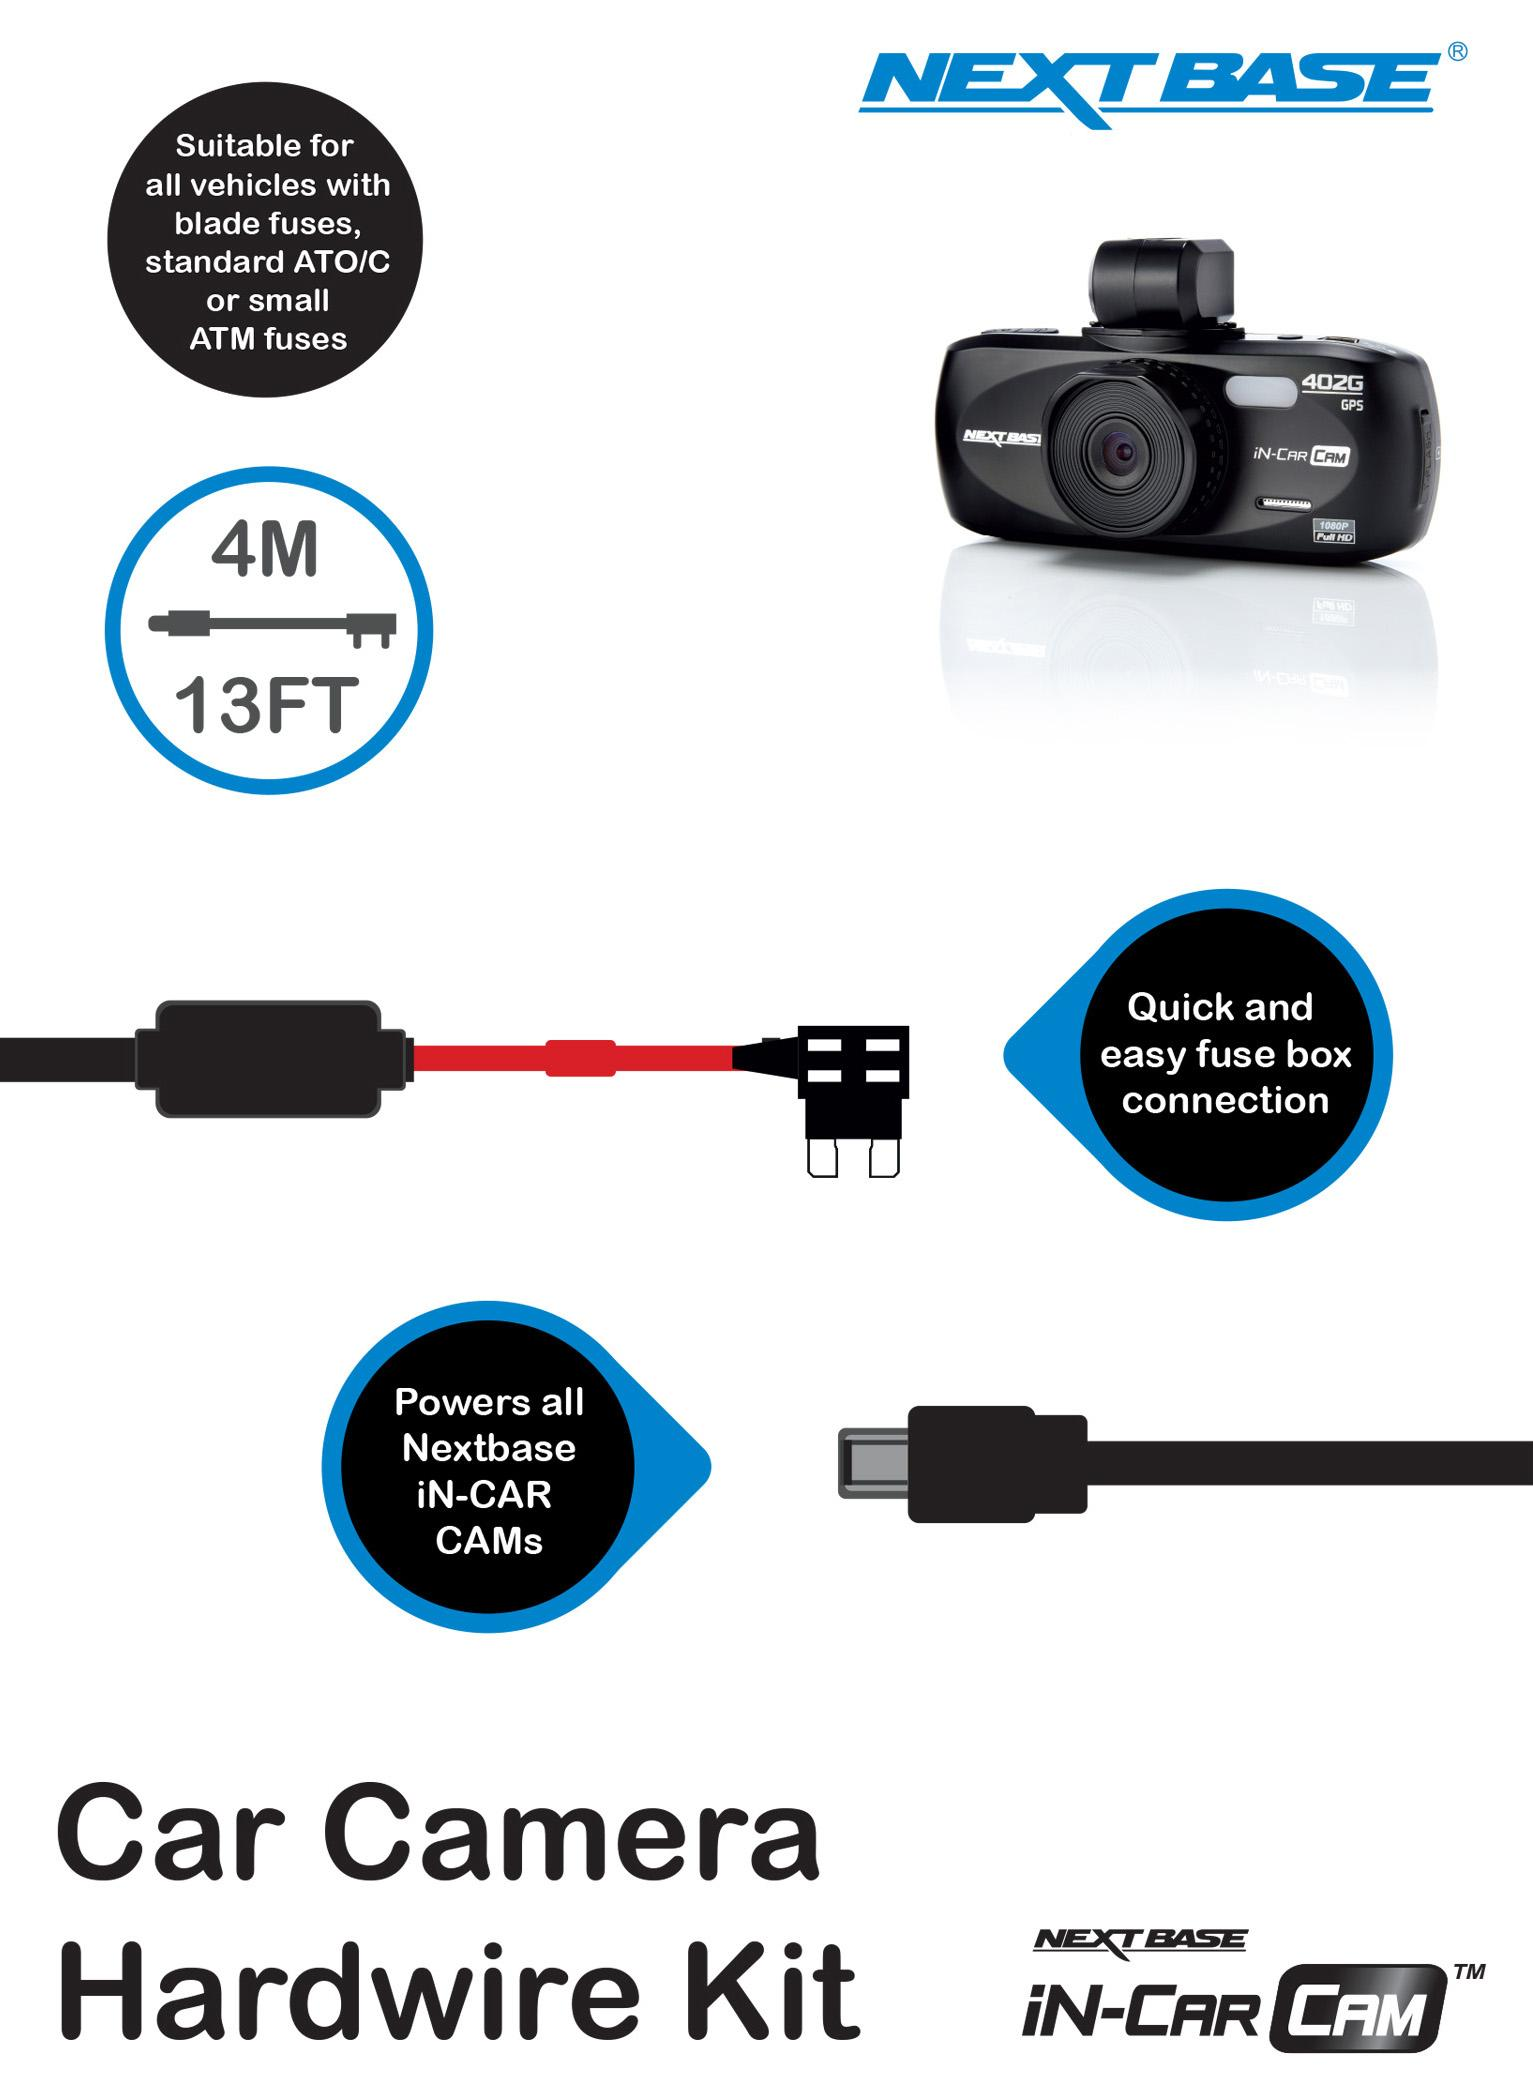 155360?w=637&h=403 dash cam hardwire kit how to connect dashcam to fuse box at gsmx.co